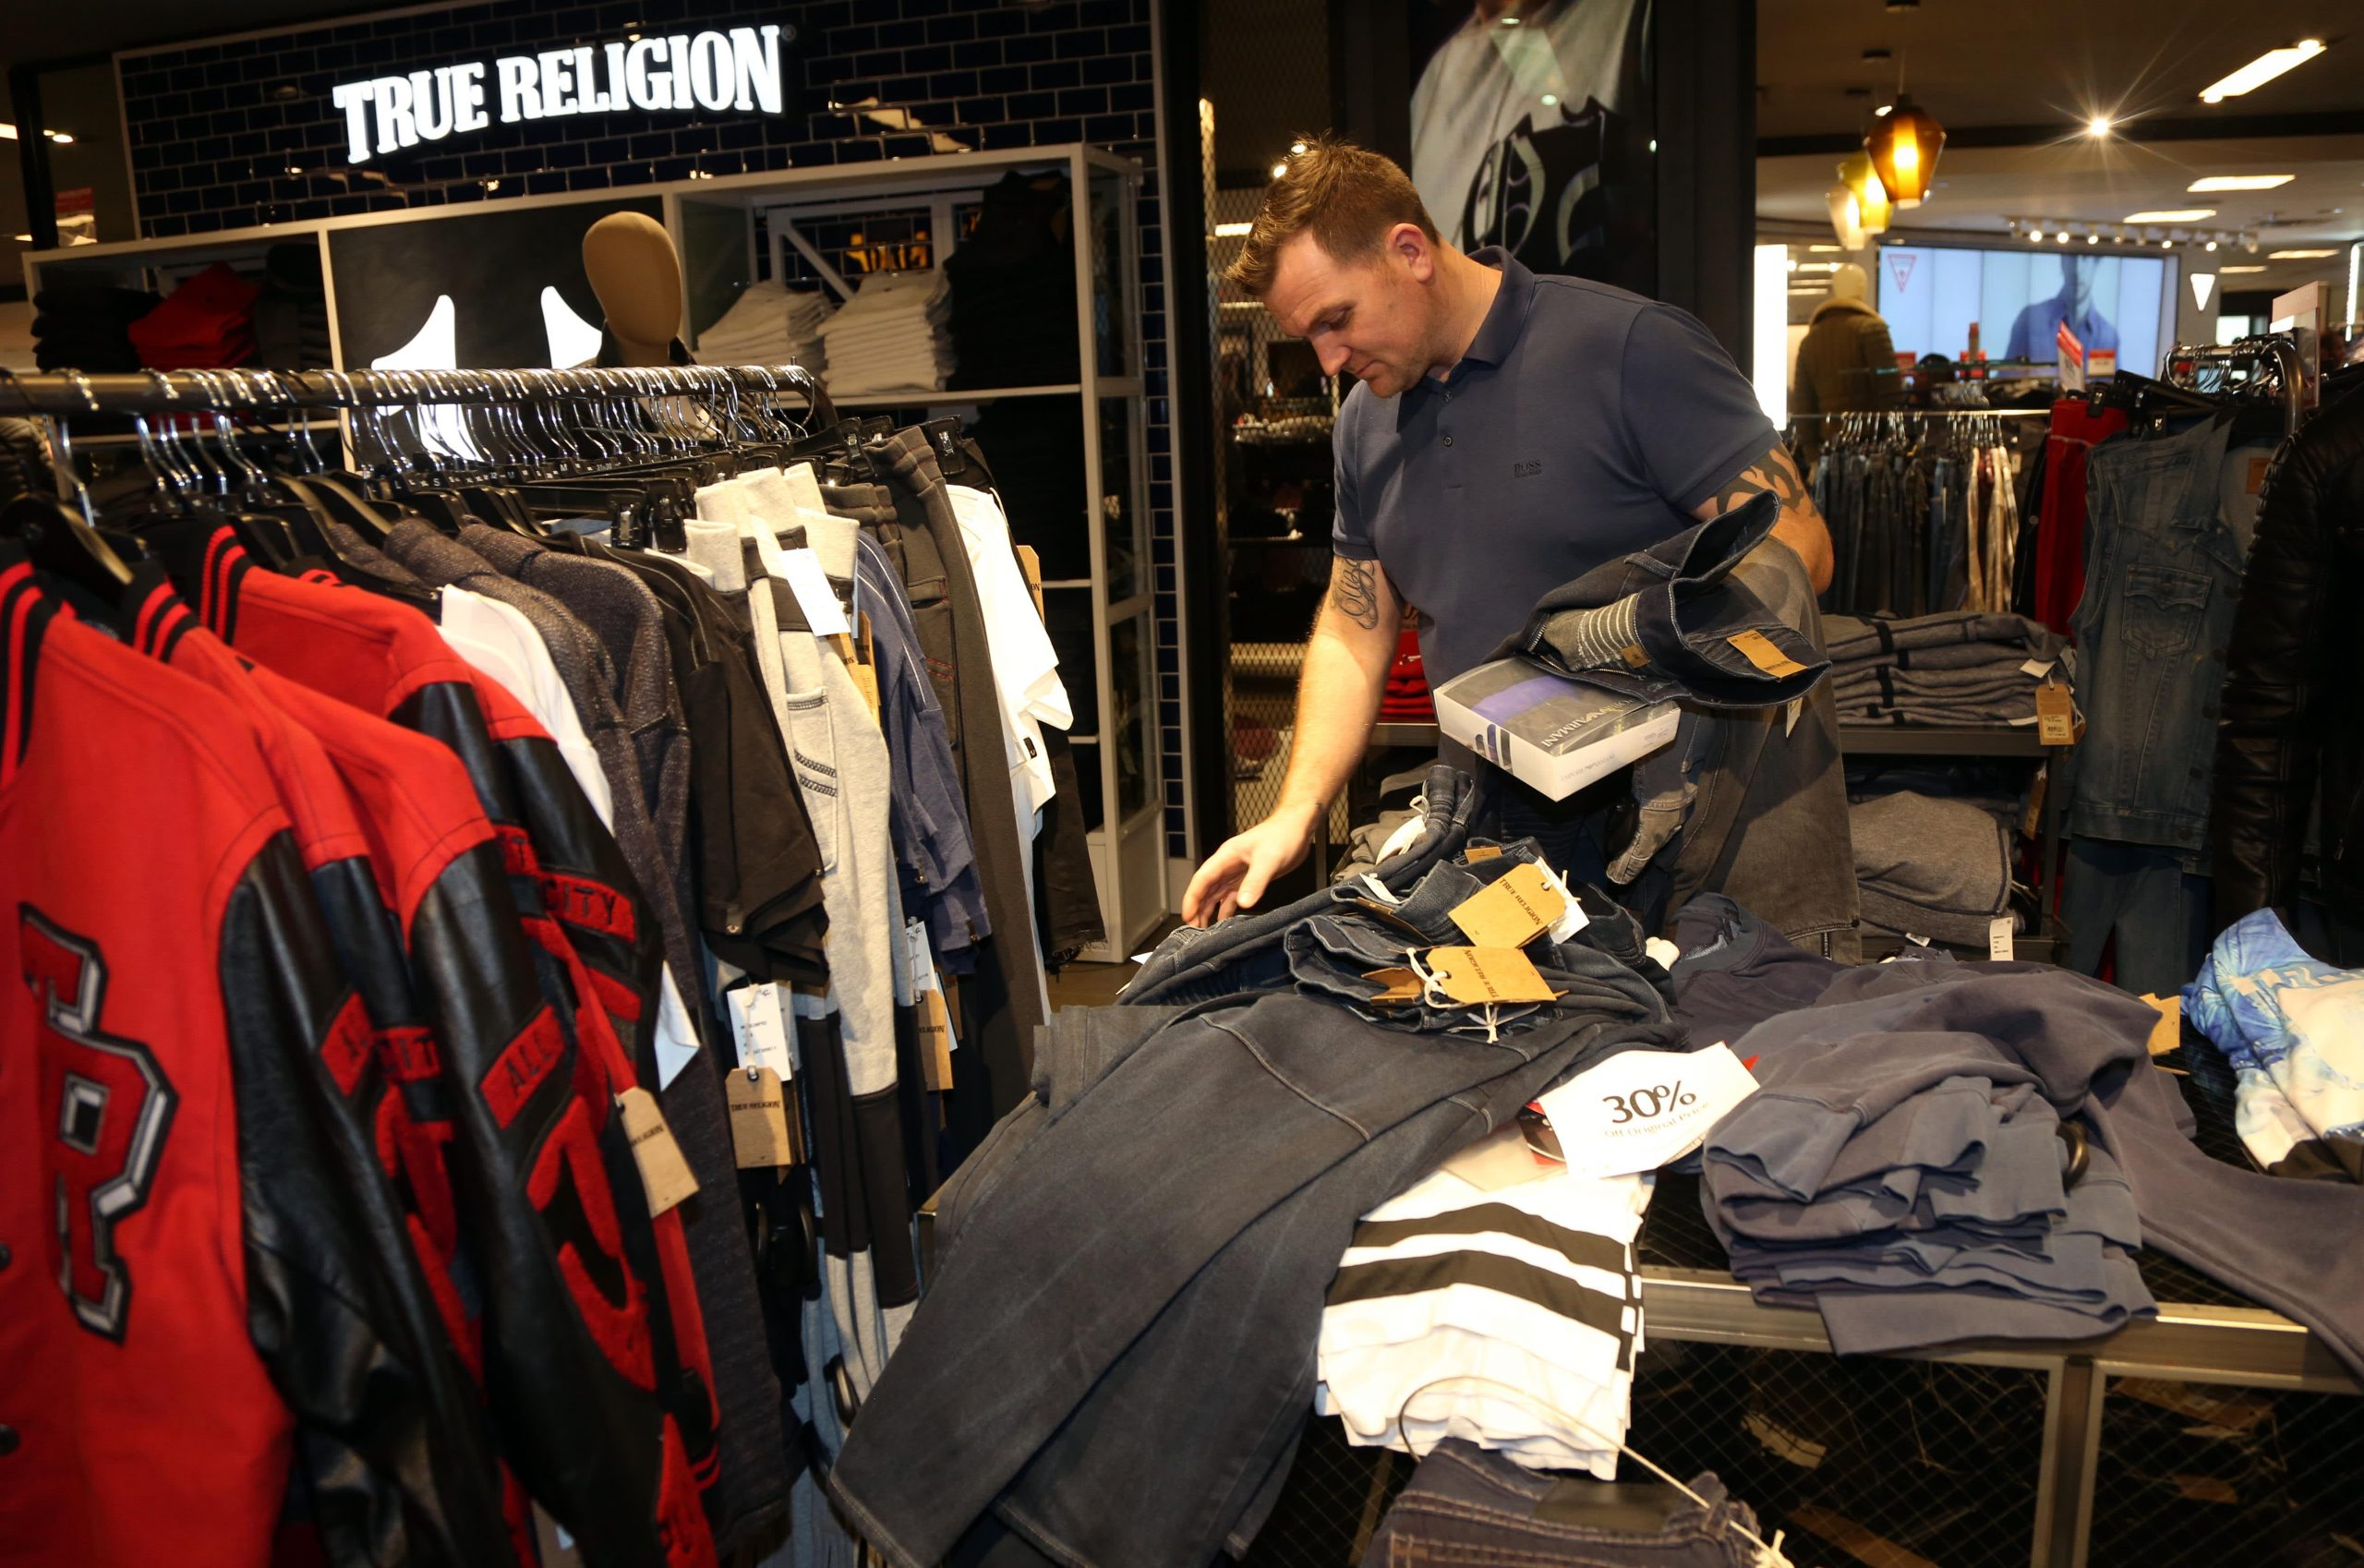 As Americans return to shop in stores, some retailers are still a mess